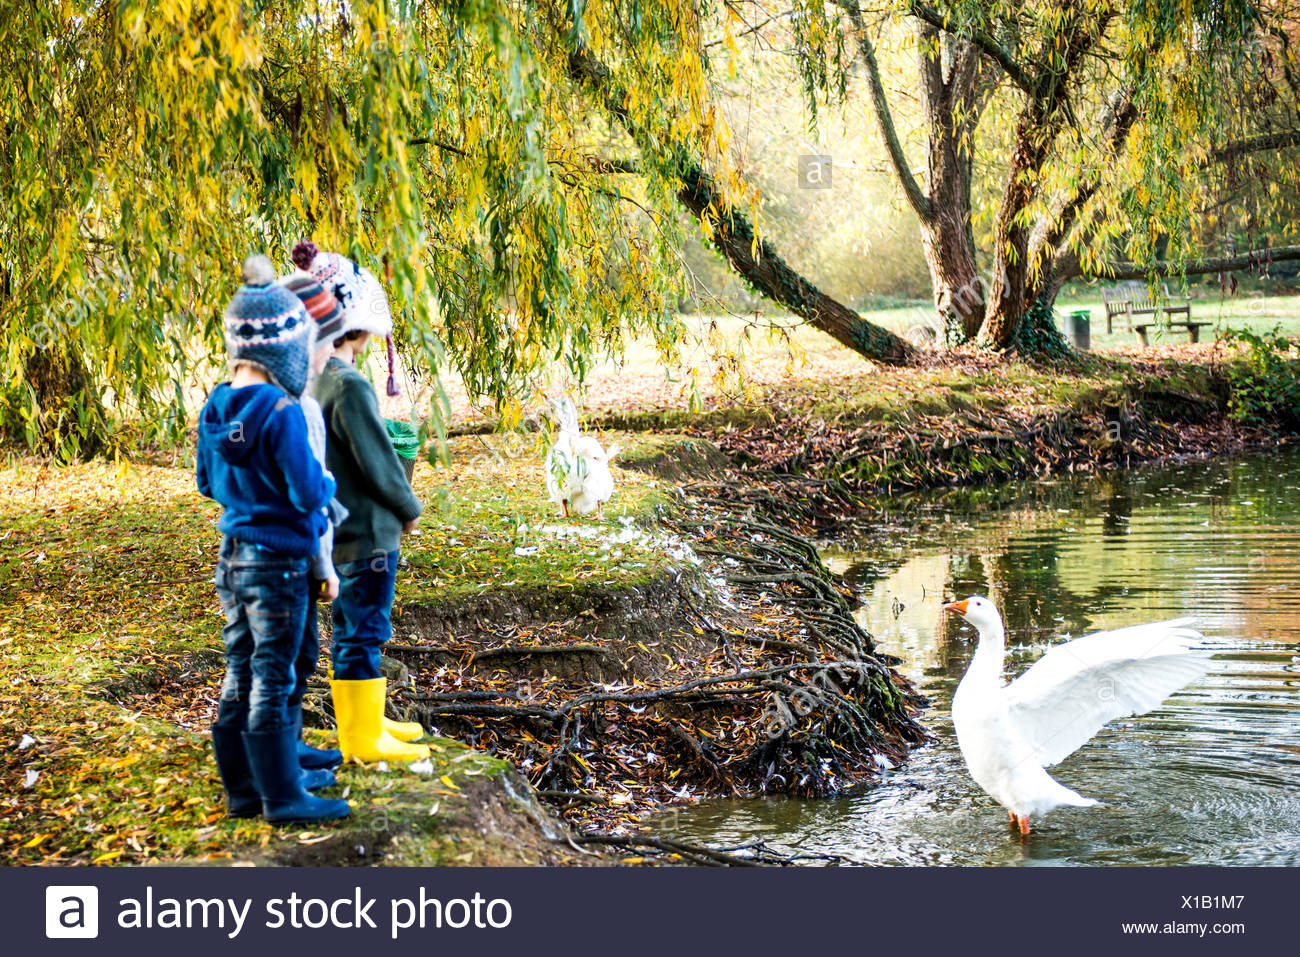 Three young boys, standing beside lake, watching goose in water - Stock Image